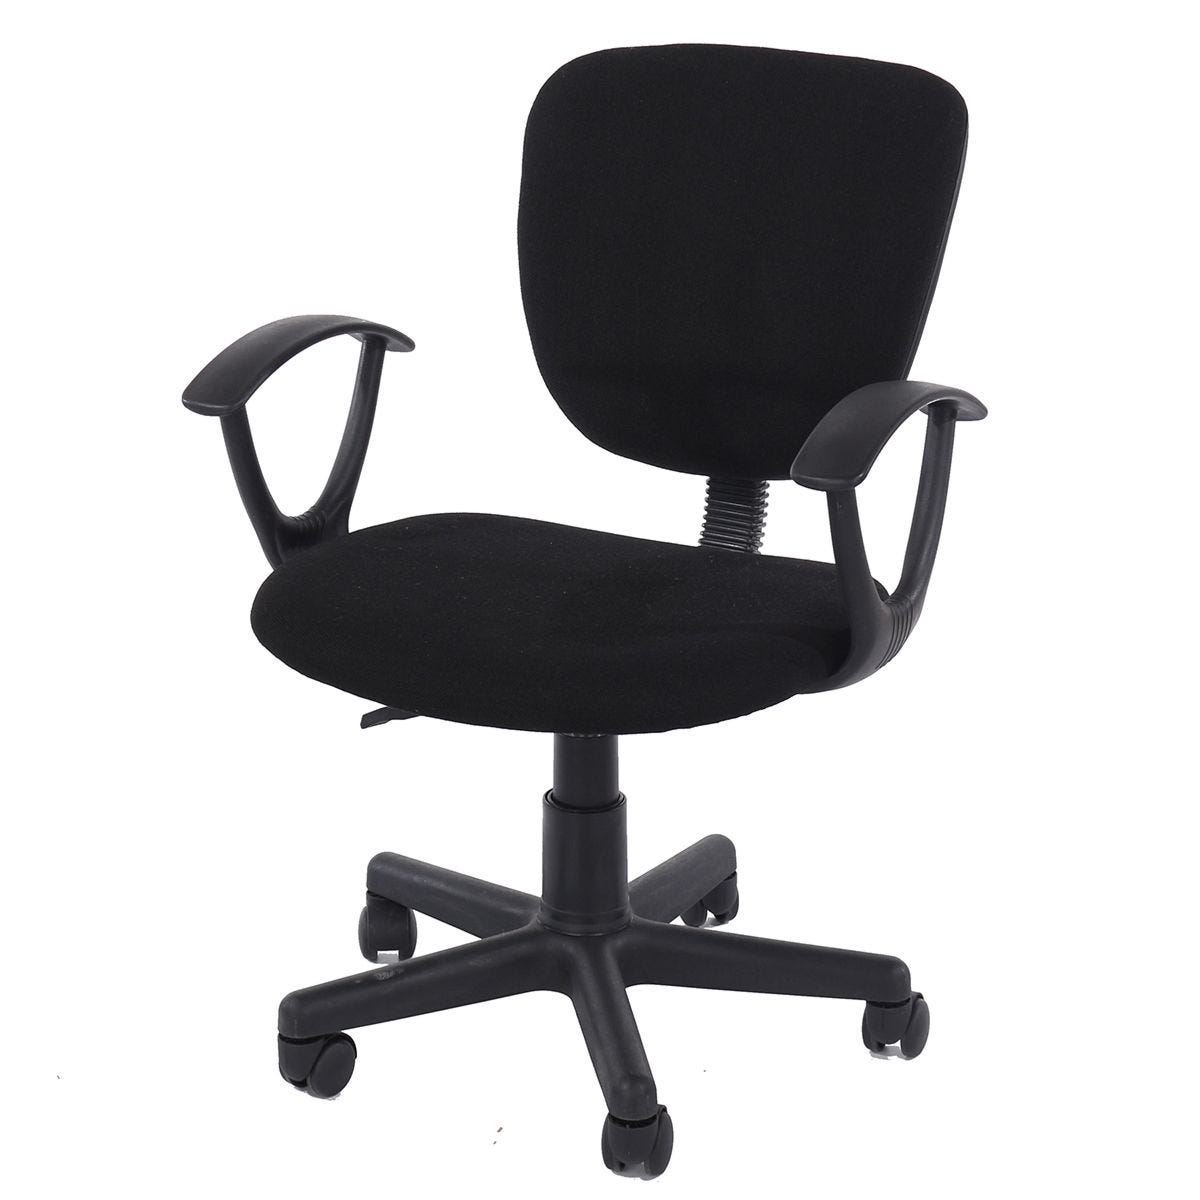 Santorini Study Chair - Black